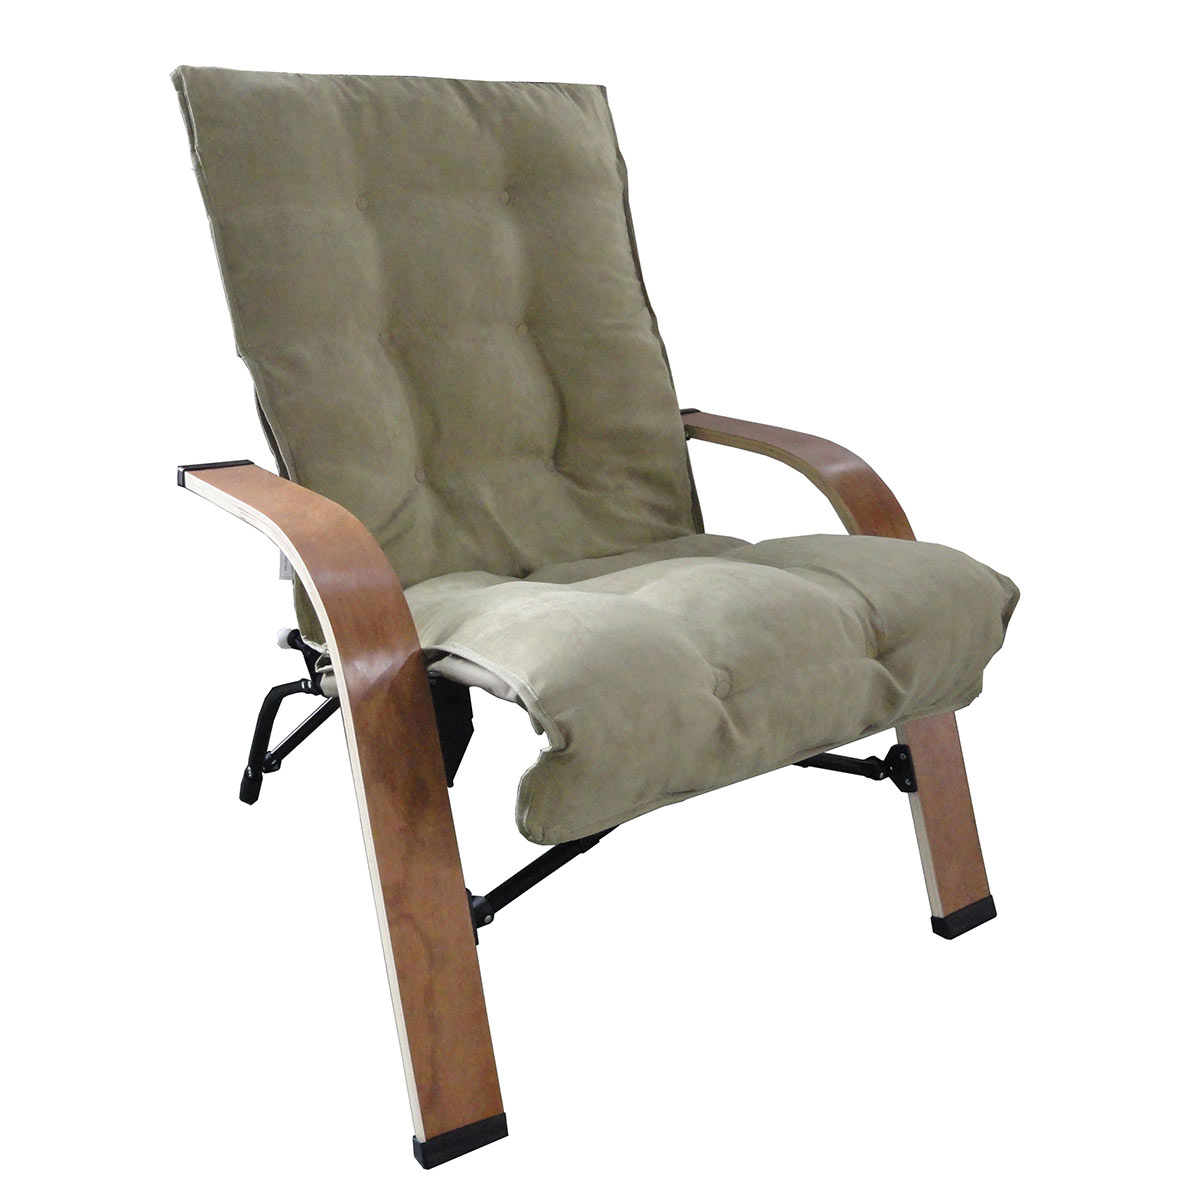 International Caravan Folding Chair with Wooden Arms FREE SHIPPING